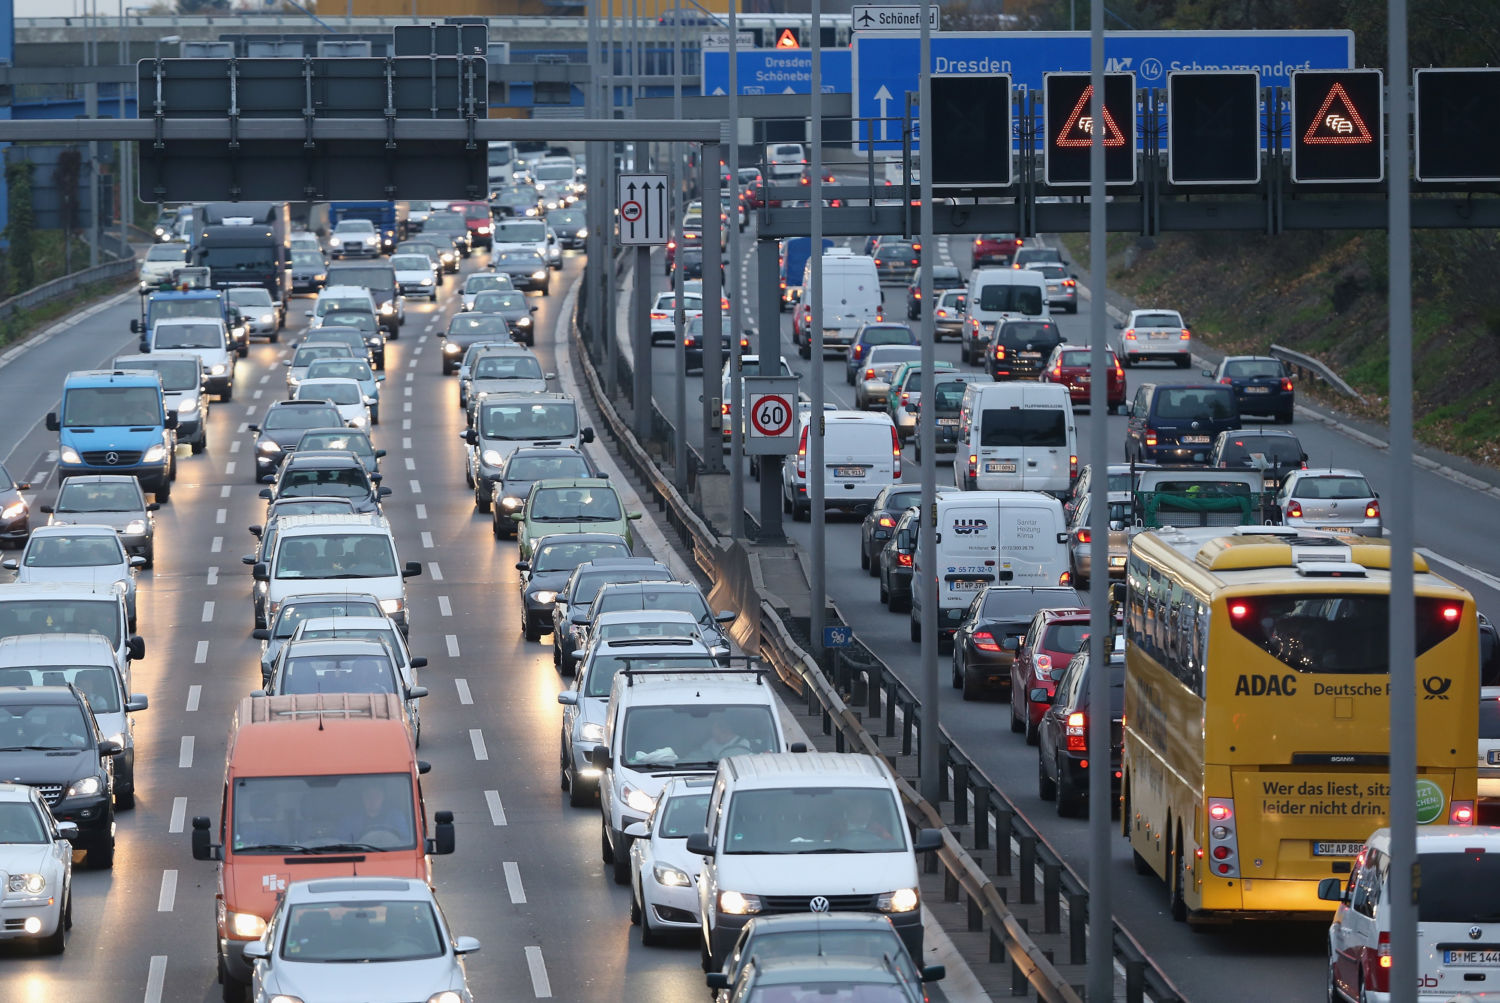 Car In German >> In Drive To Cut Emissions Germany Confronts Its Car Culture